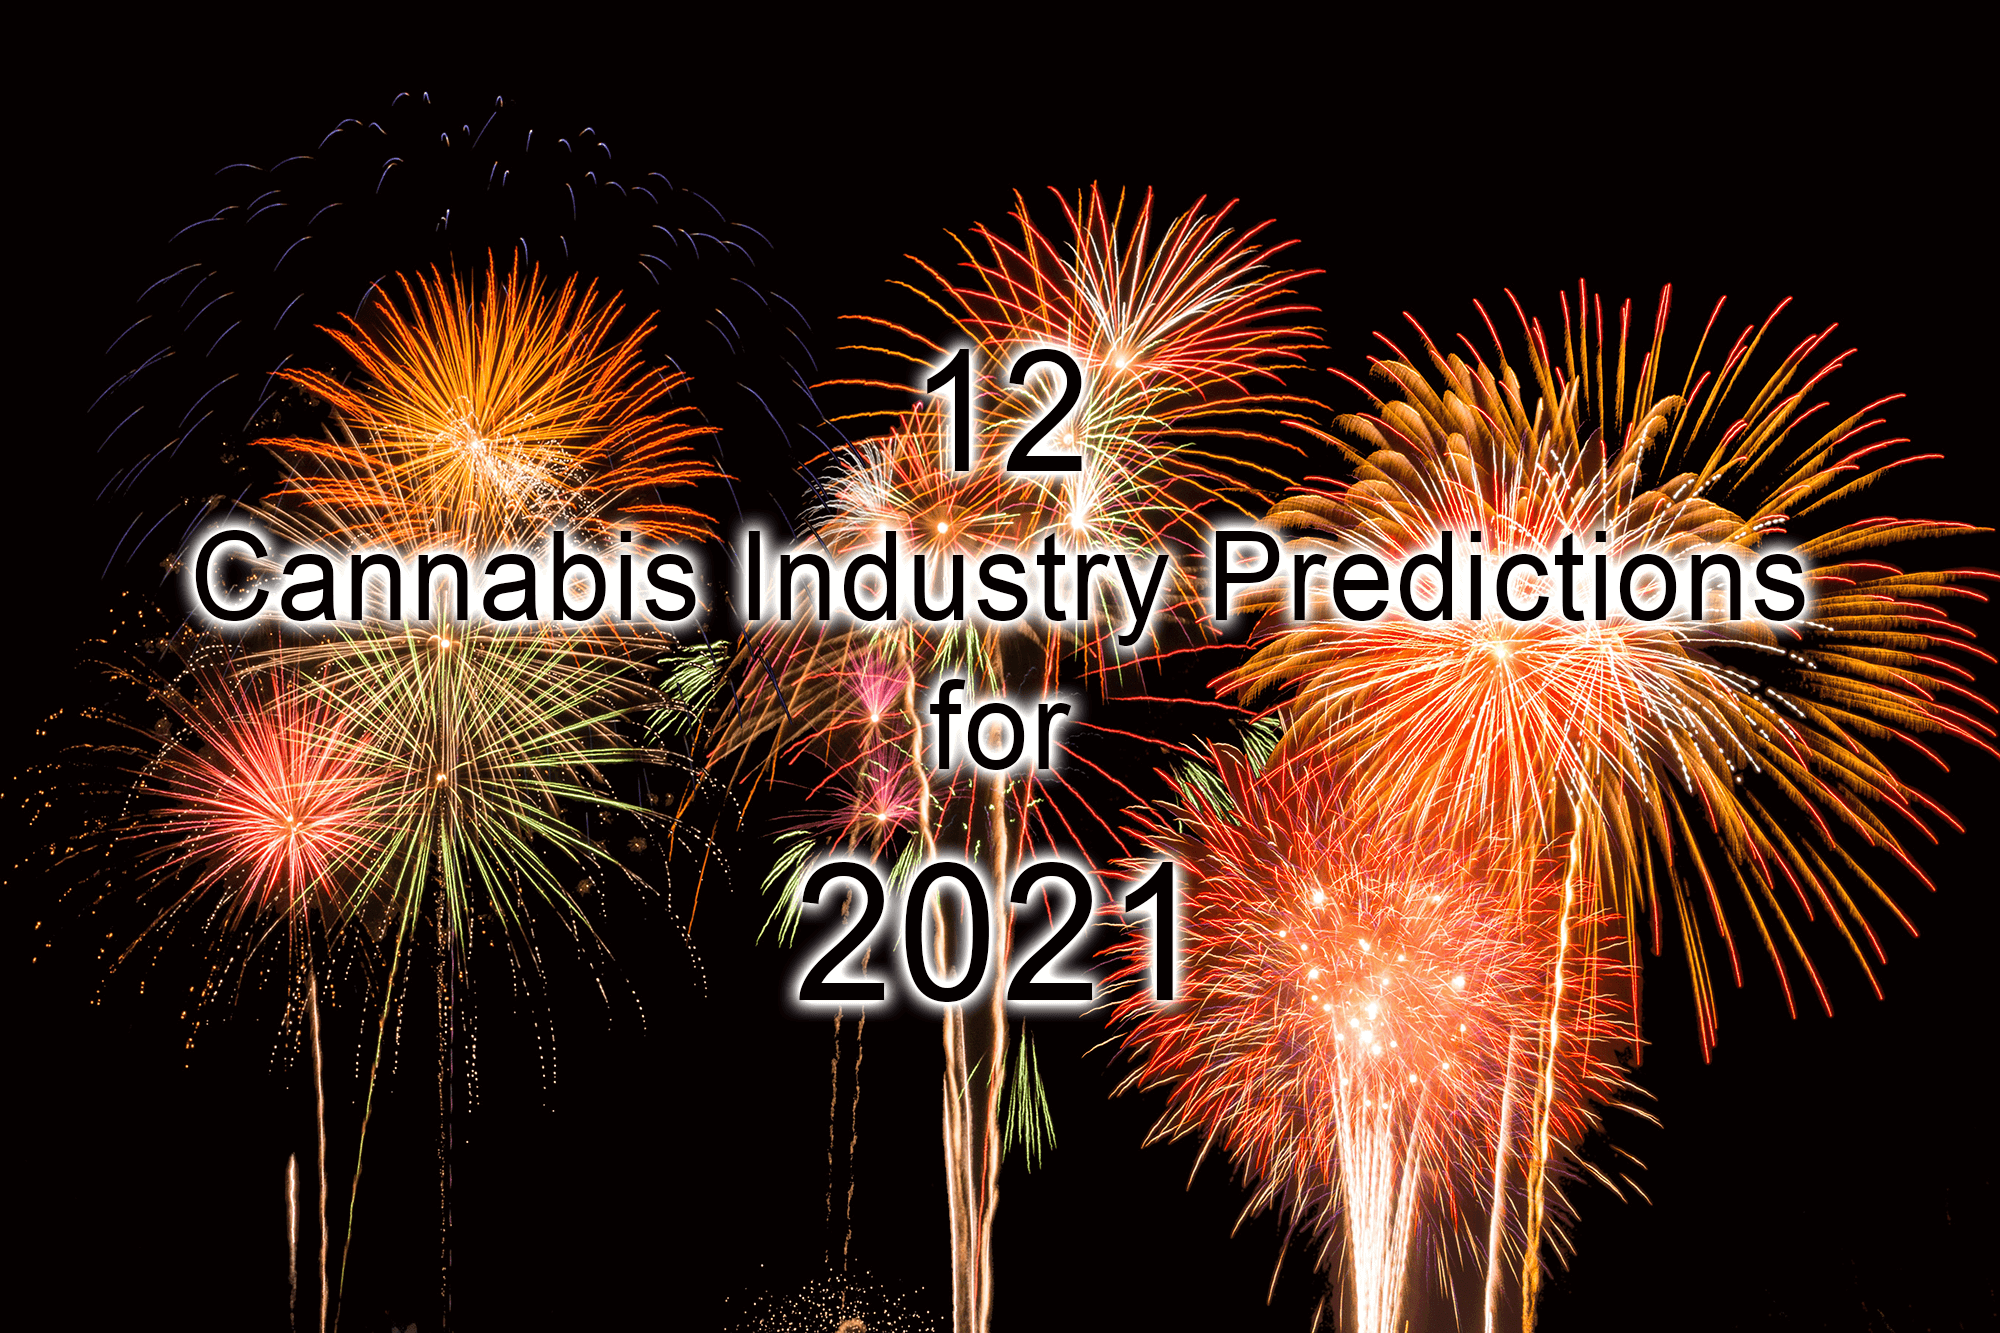 Cannabis industry predictions for 2021